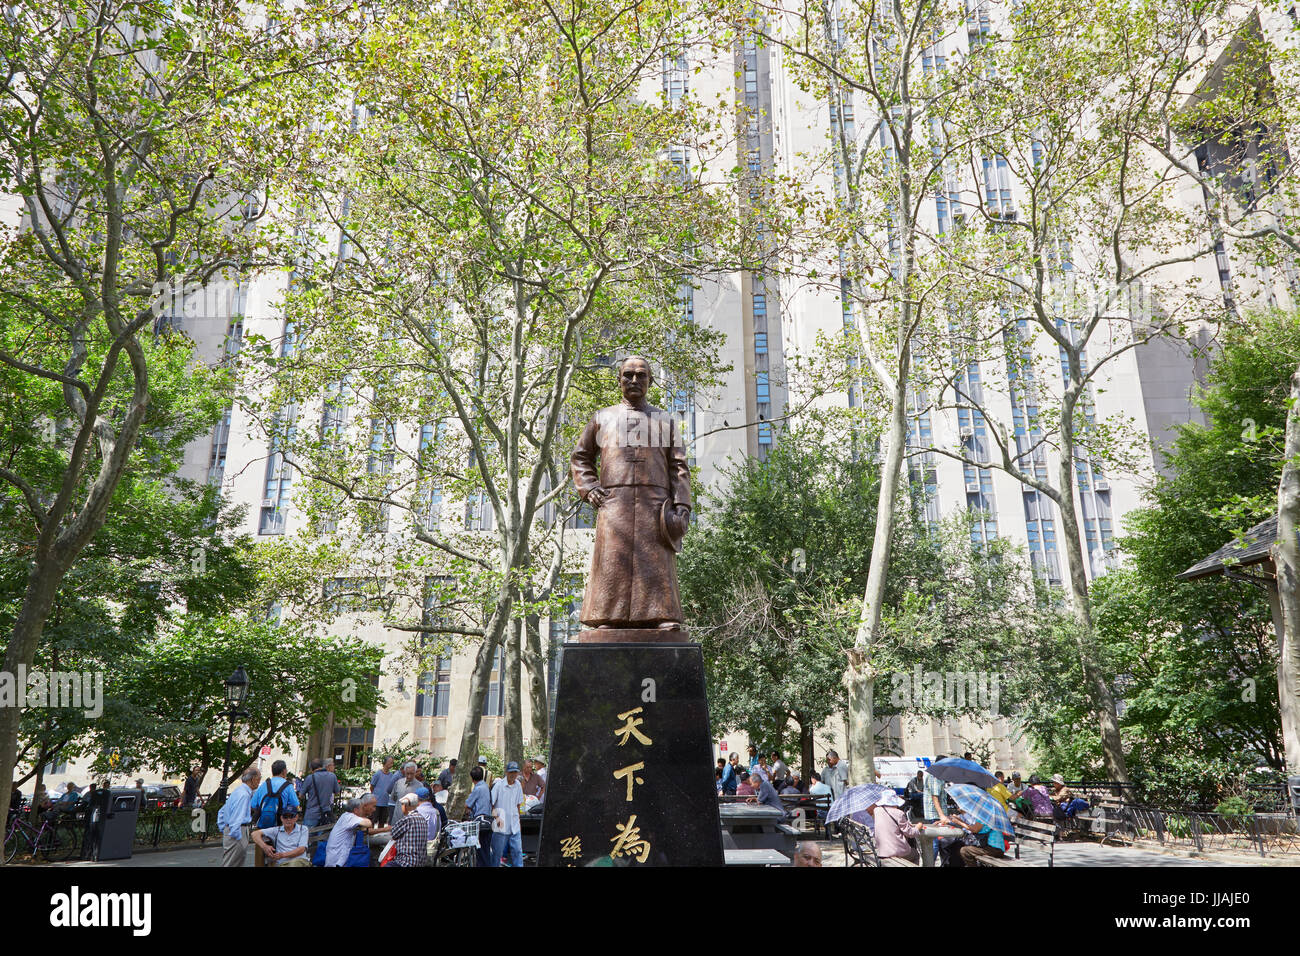 Columbus Park with people playing Chinese Chess and Sen Yat-sen statue in New York - Stock Image